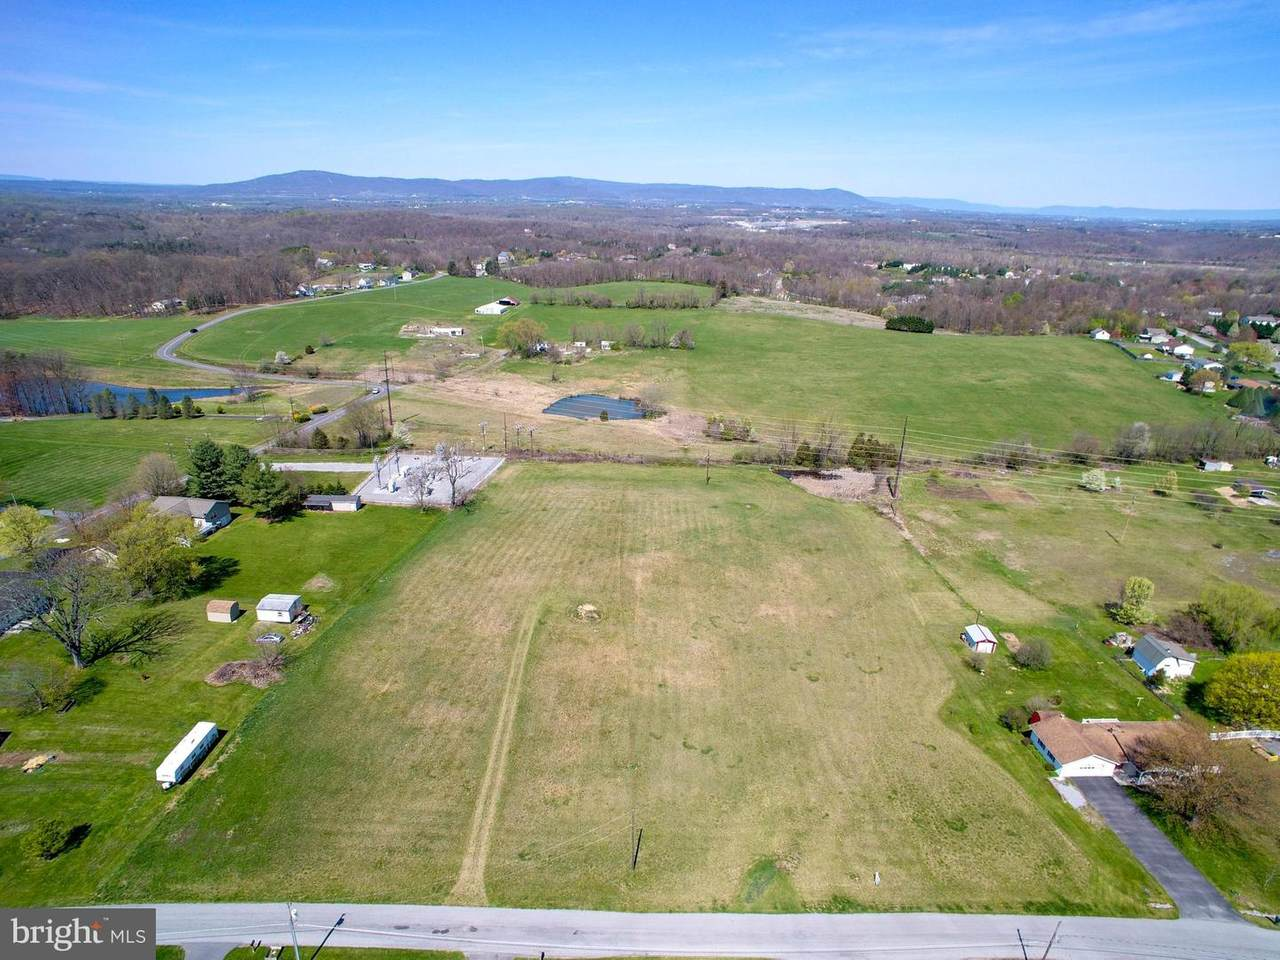 https://bt-photos.global.ssl.fastly.net/brightmls/1280_boomver_1_304338307460-2.jpg